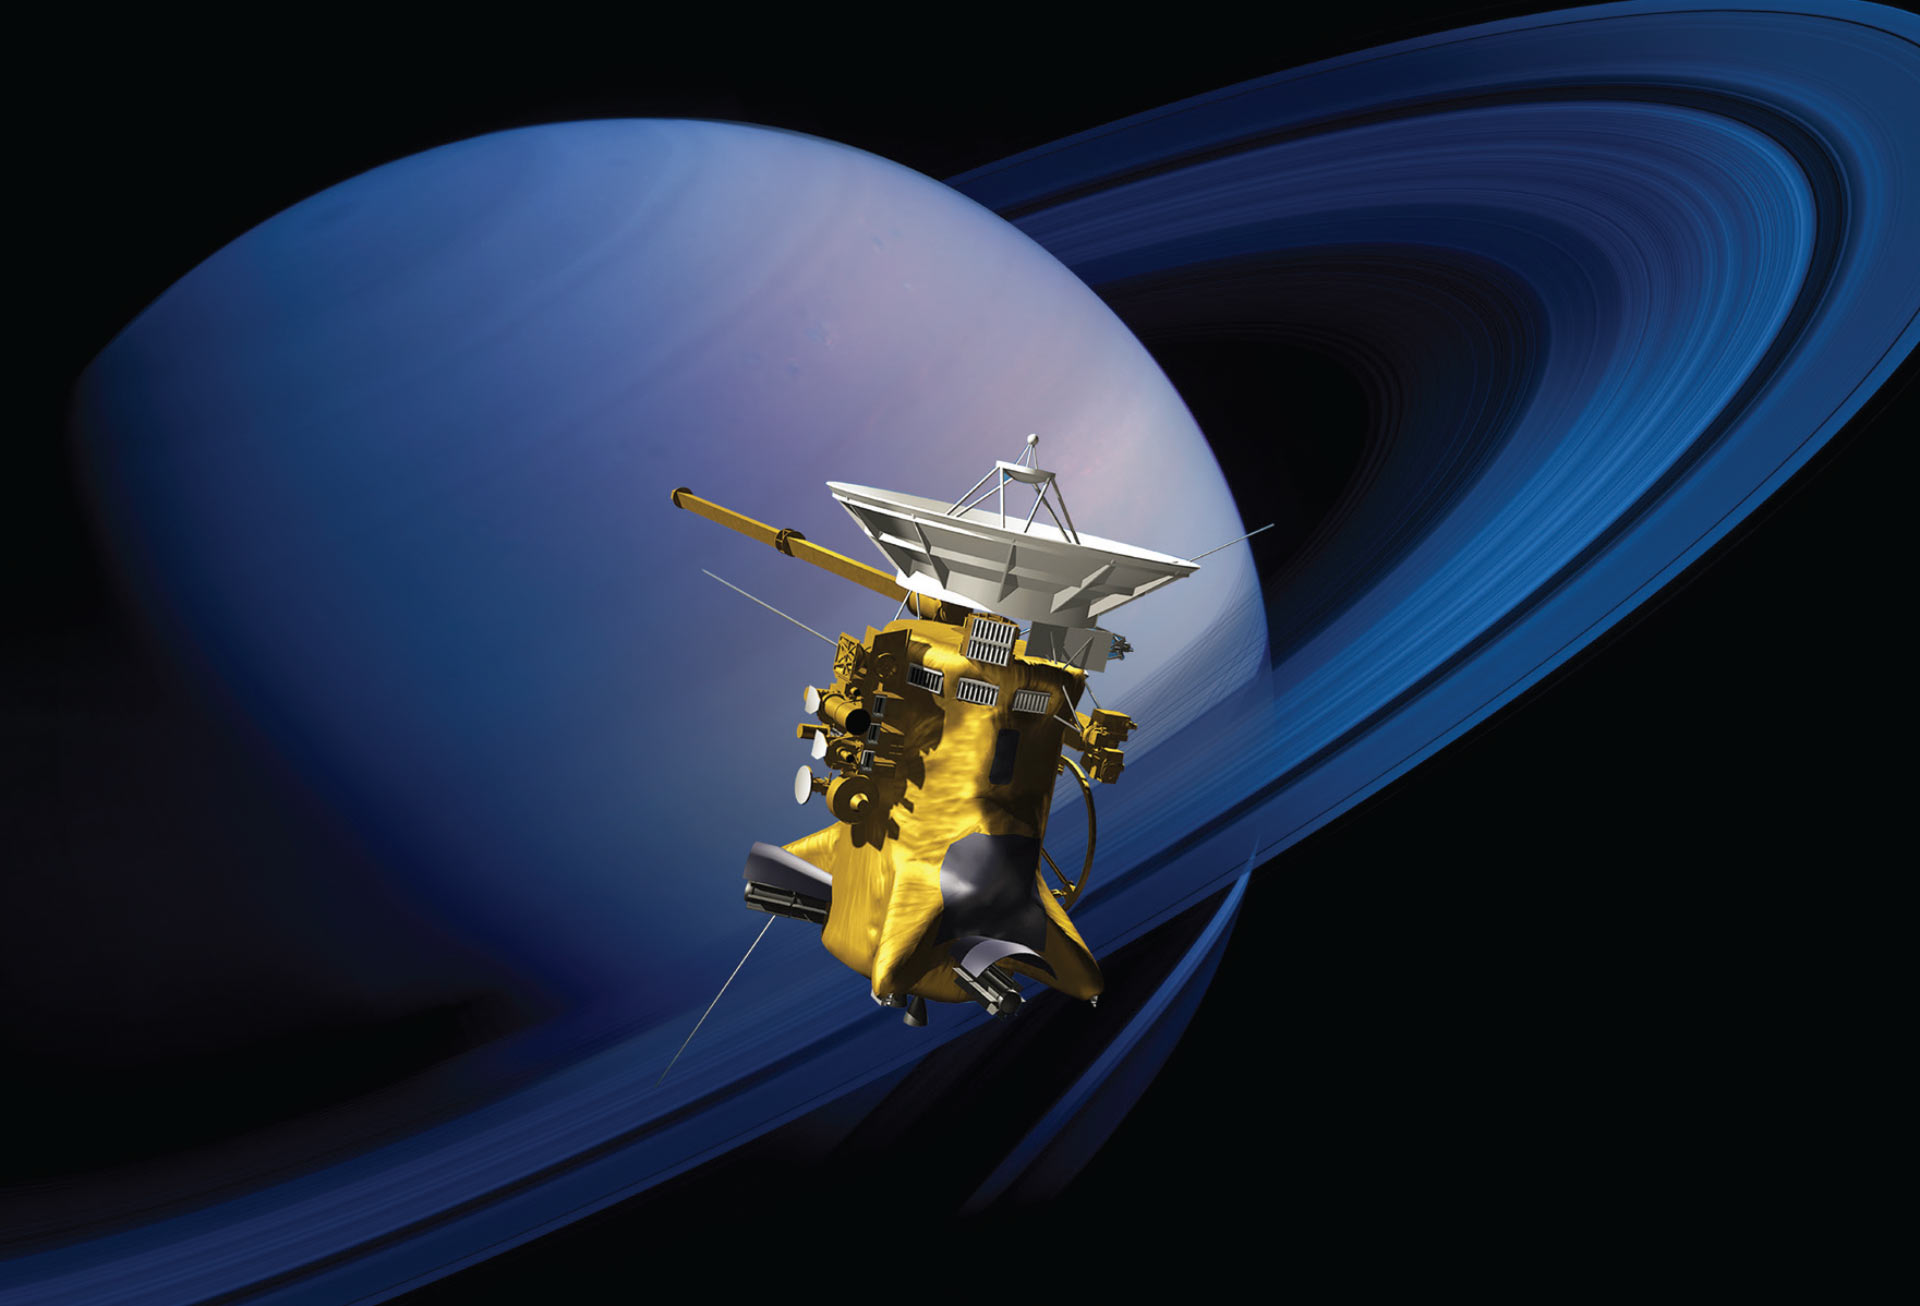 Spaceship to 'graze' Saturn's rings in daring operation — NASA mission